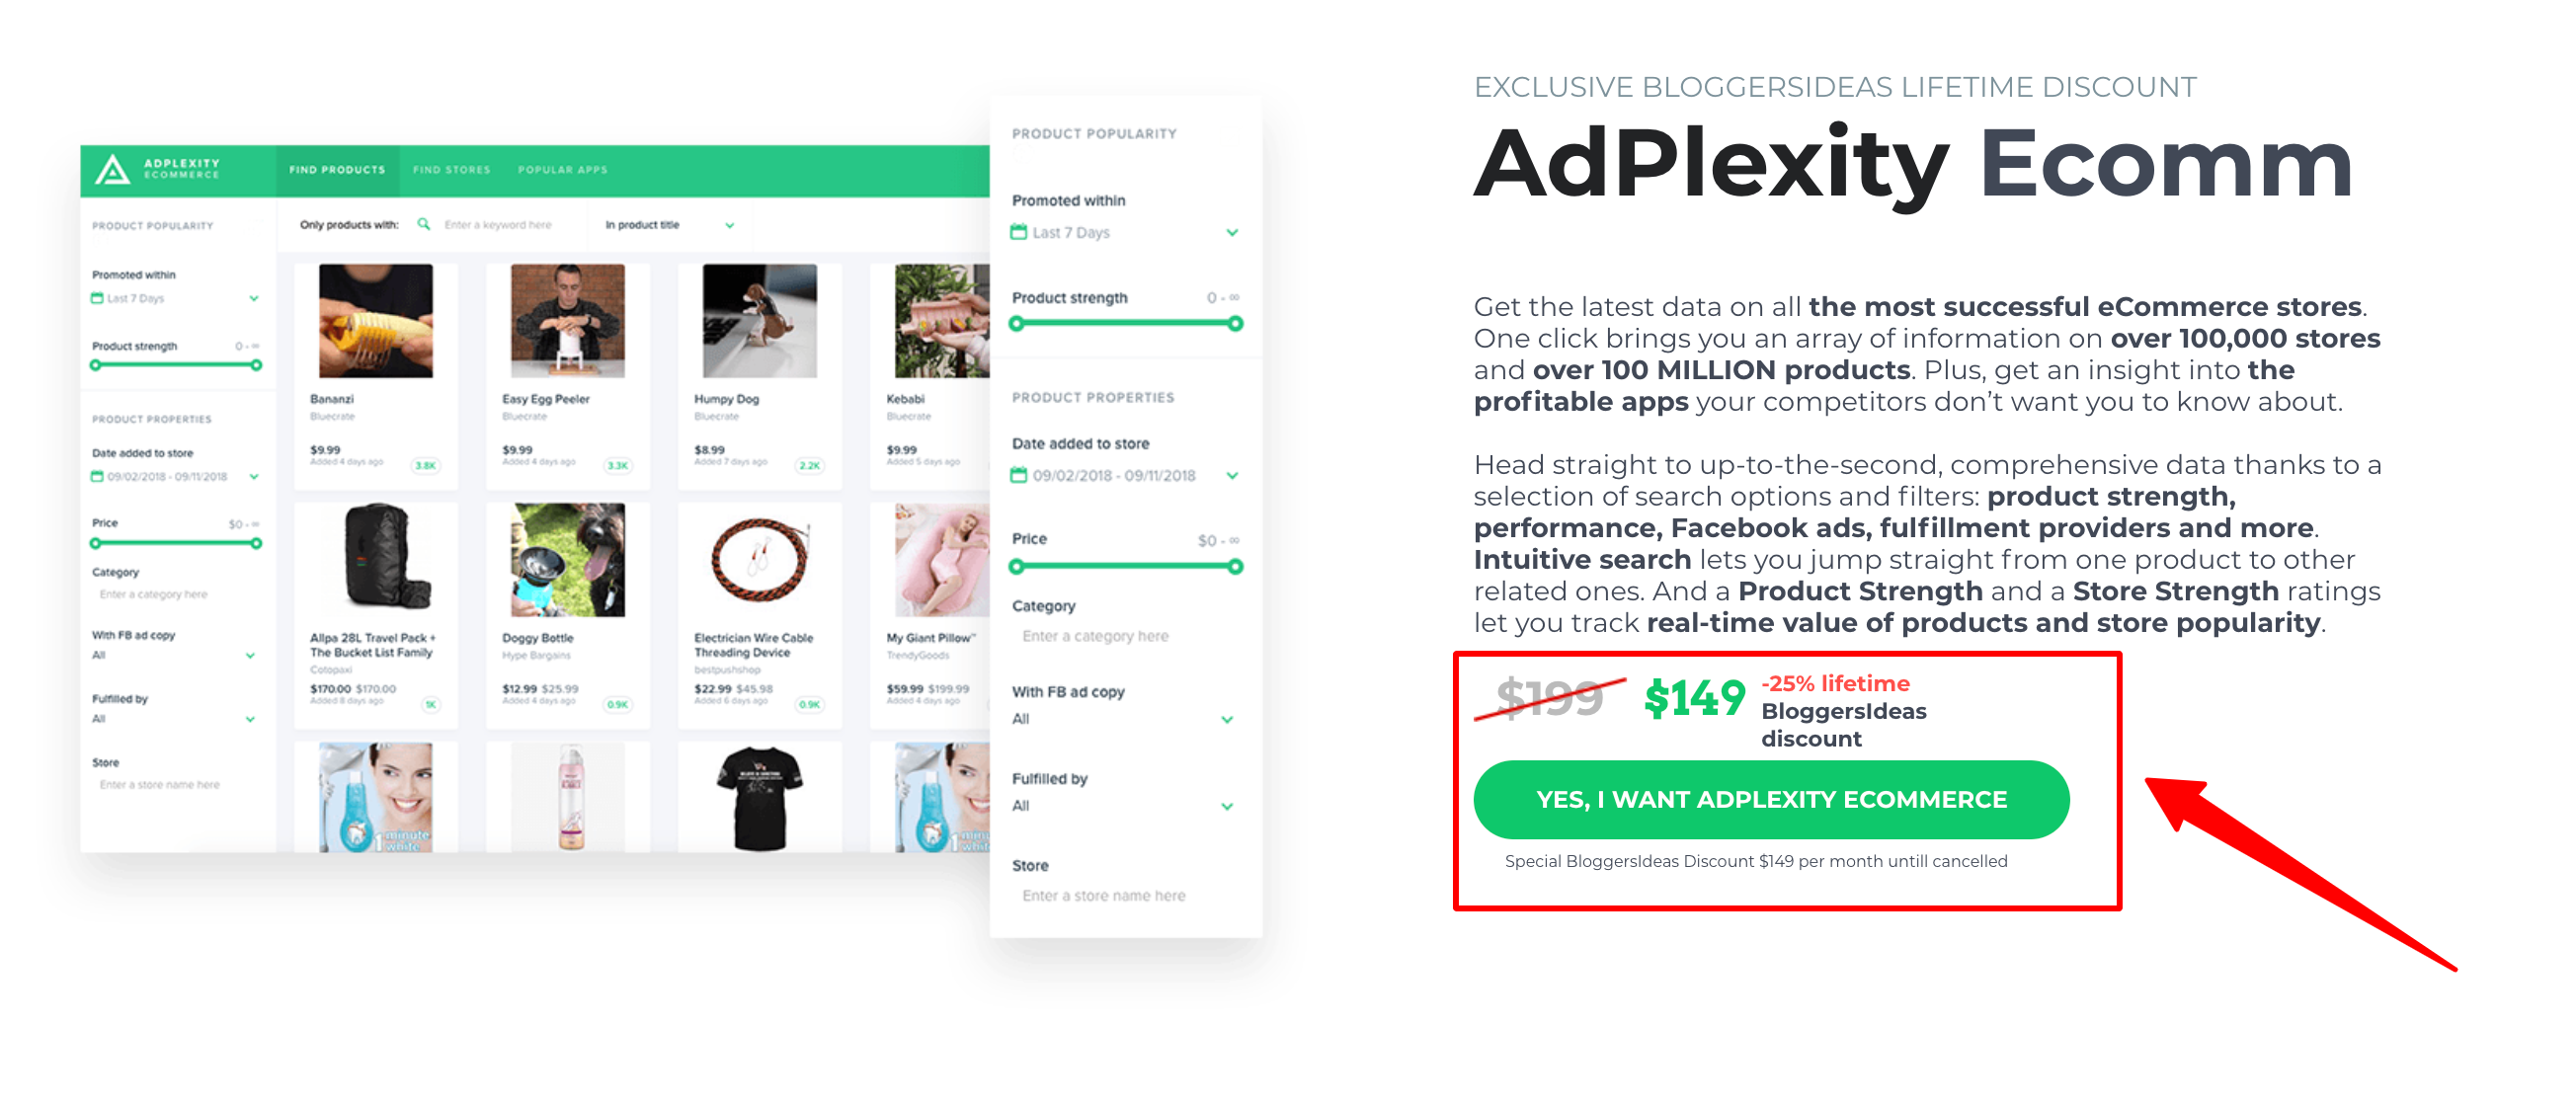 Adperiscope vs APdPlexity - AdPlexity Ecommerce Discount Offer- AdPlexity Ecommerce